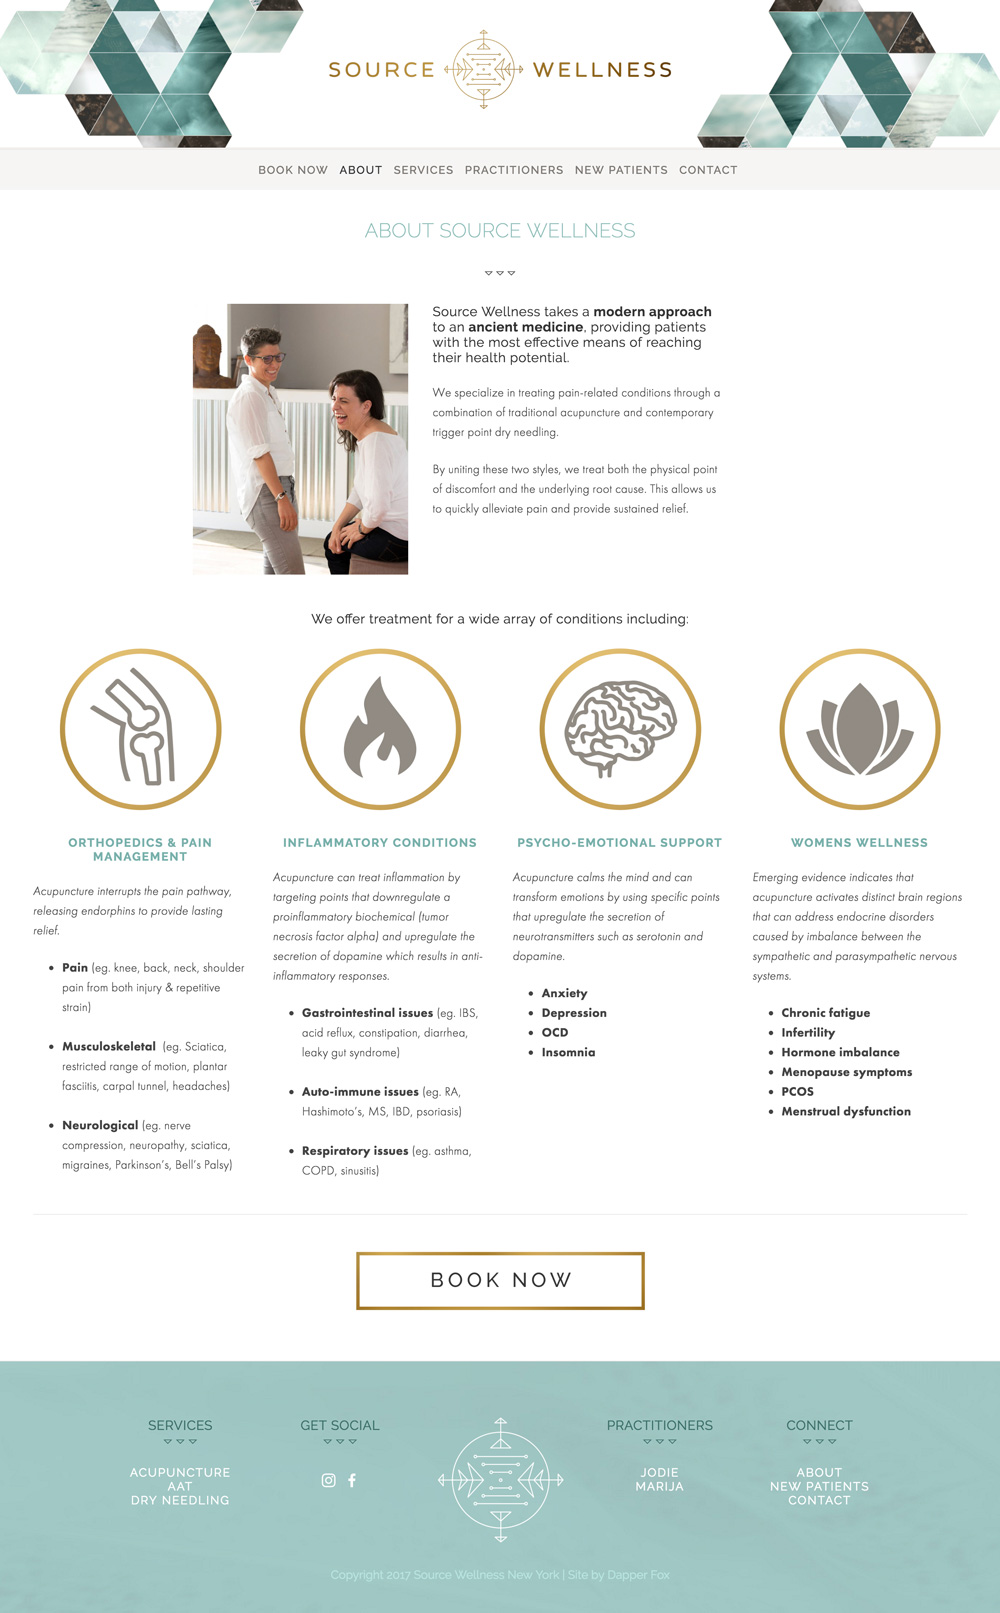 Acupuncture New York Source Wellness Squarespace Website Design and Branding by Dapper Fox Design